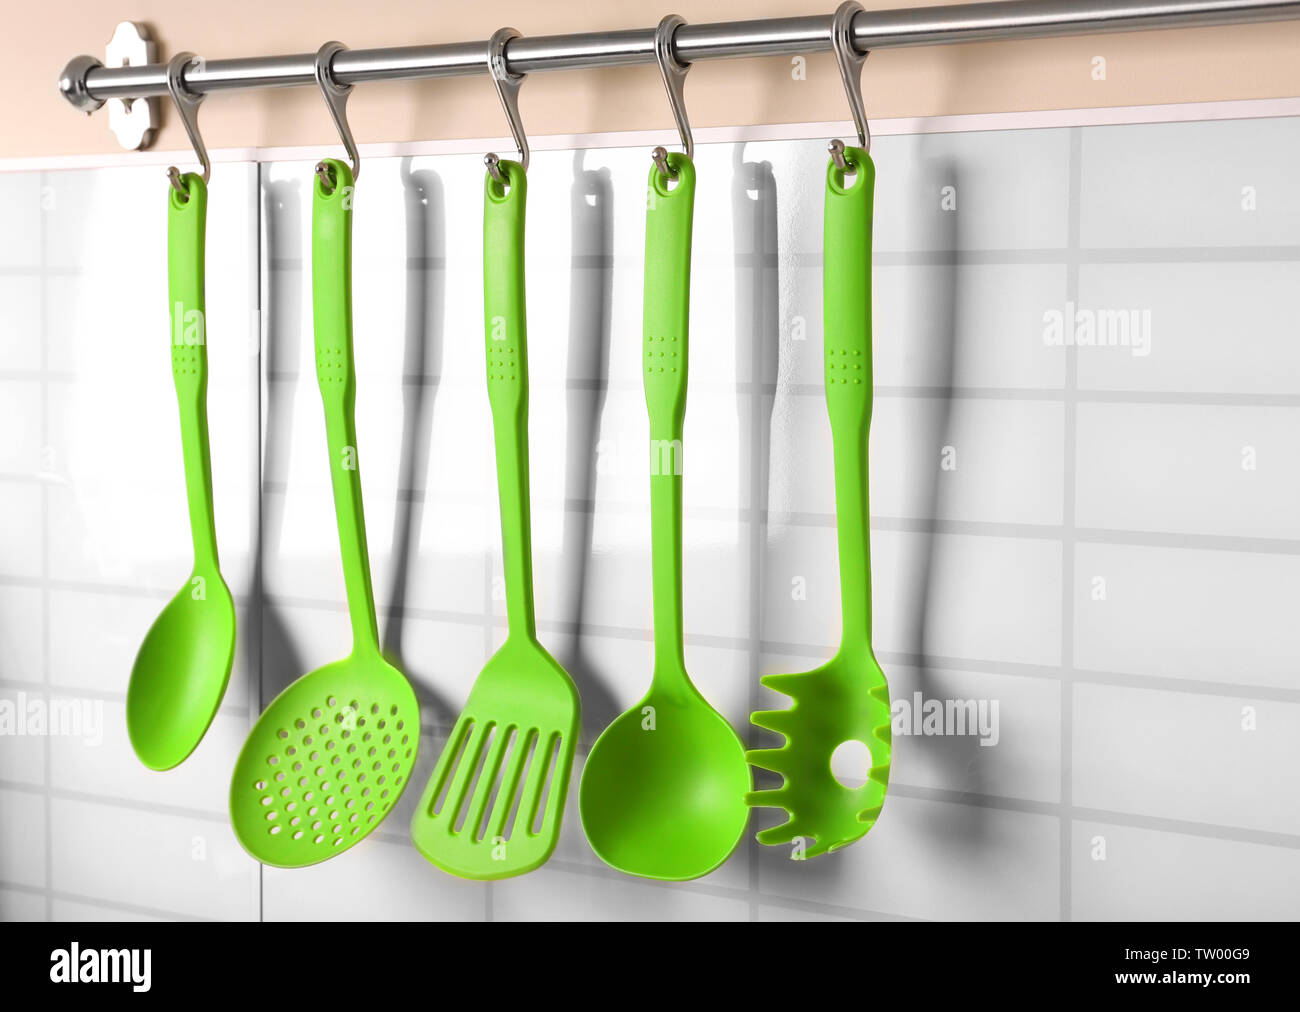 Set of kitchen utensils hanging on the wall - Stock Image